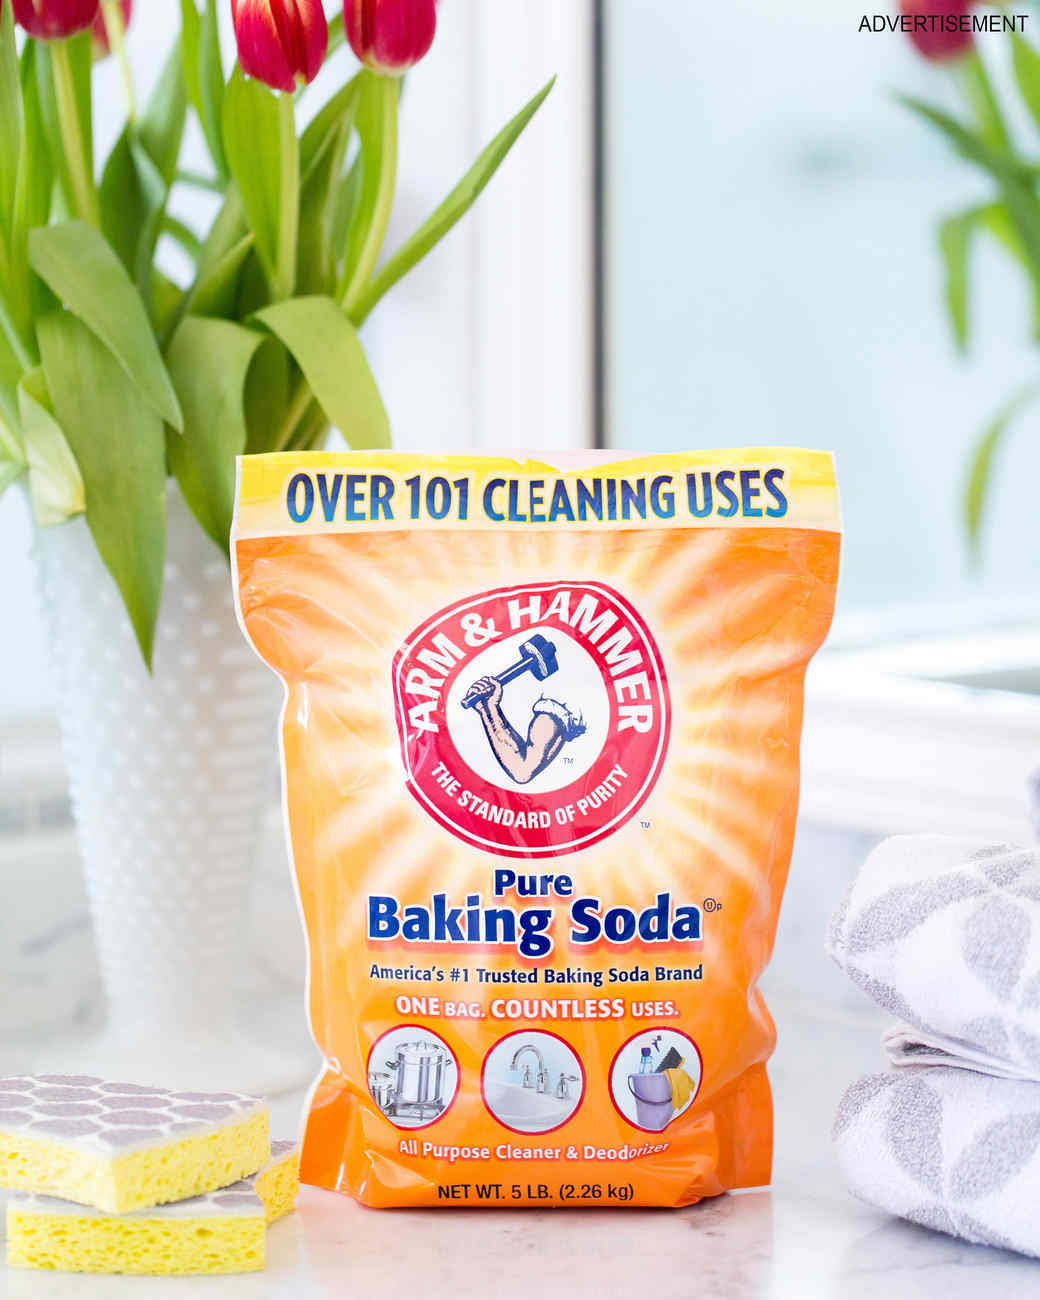 how-to-clean-bathroom-surfaces-opener-baking-soda-new-0316.jpg